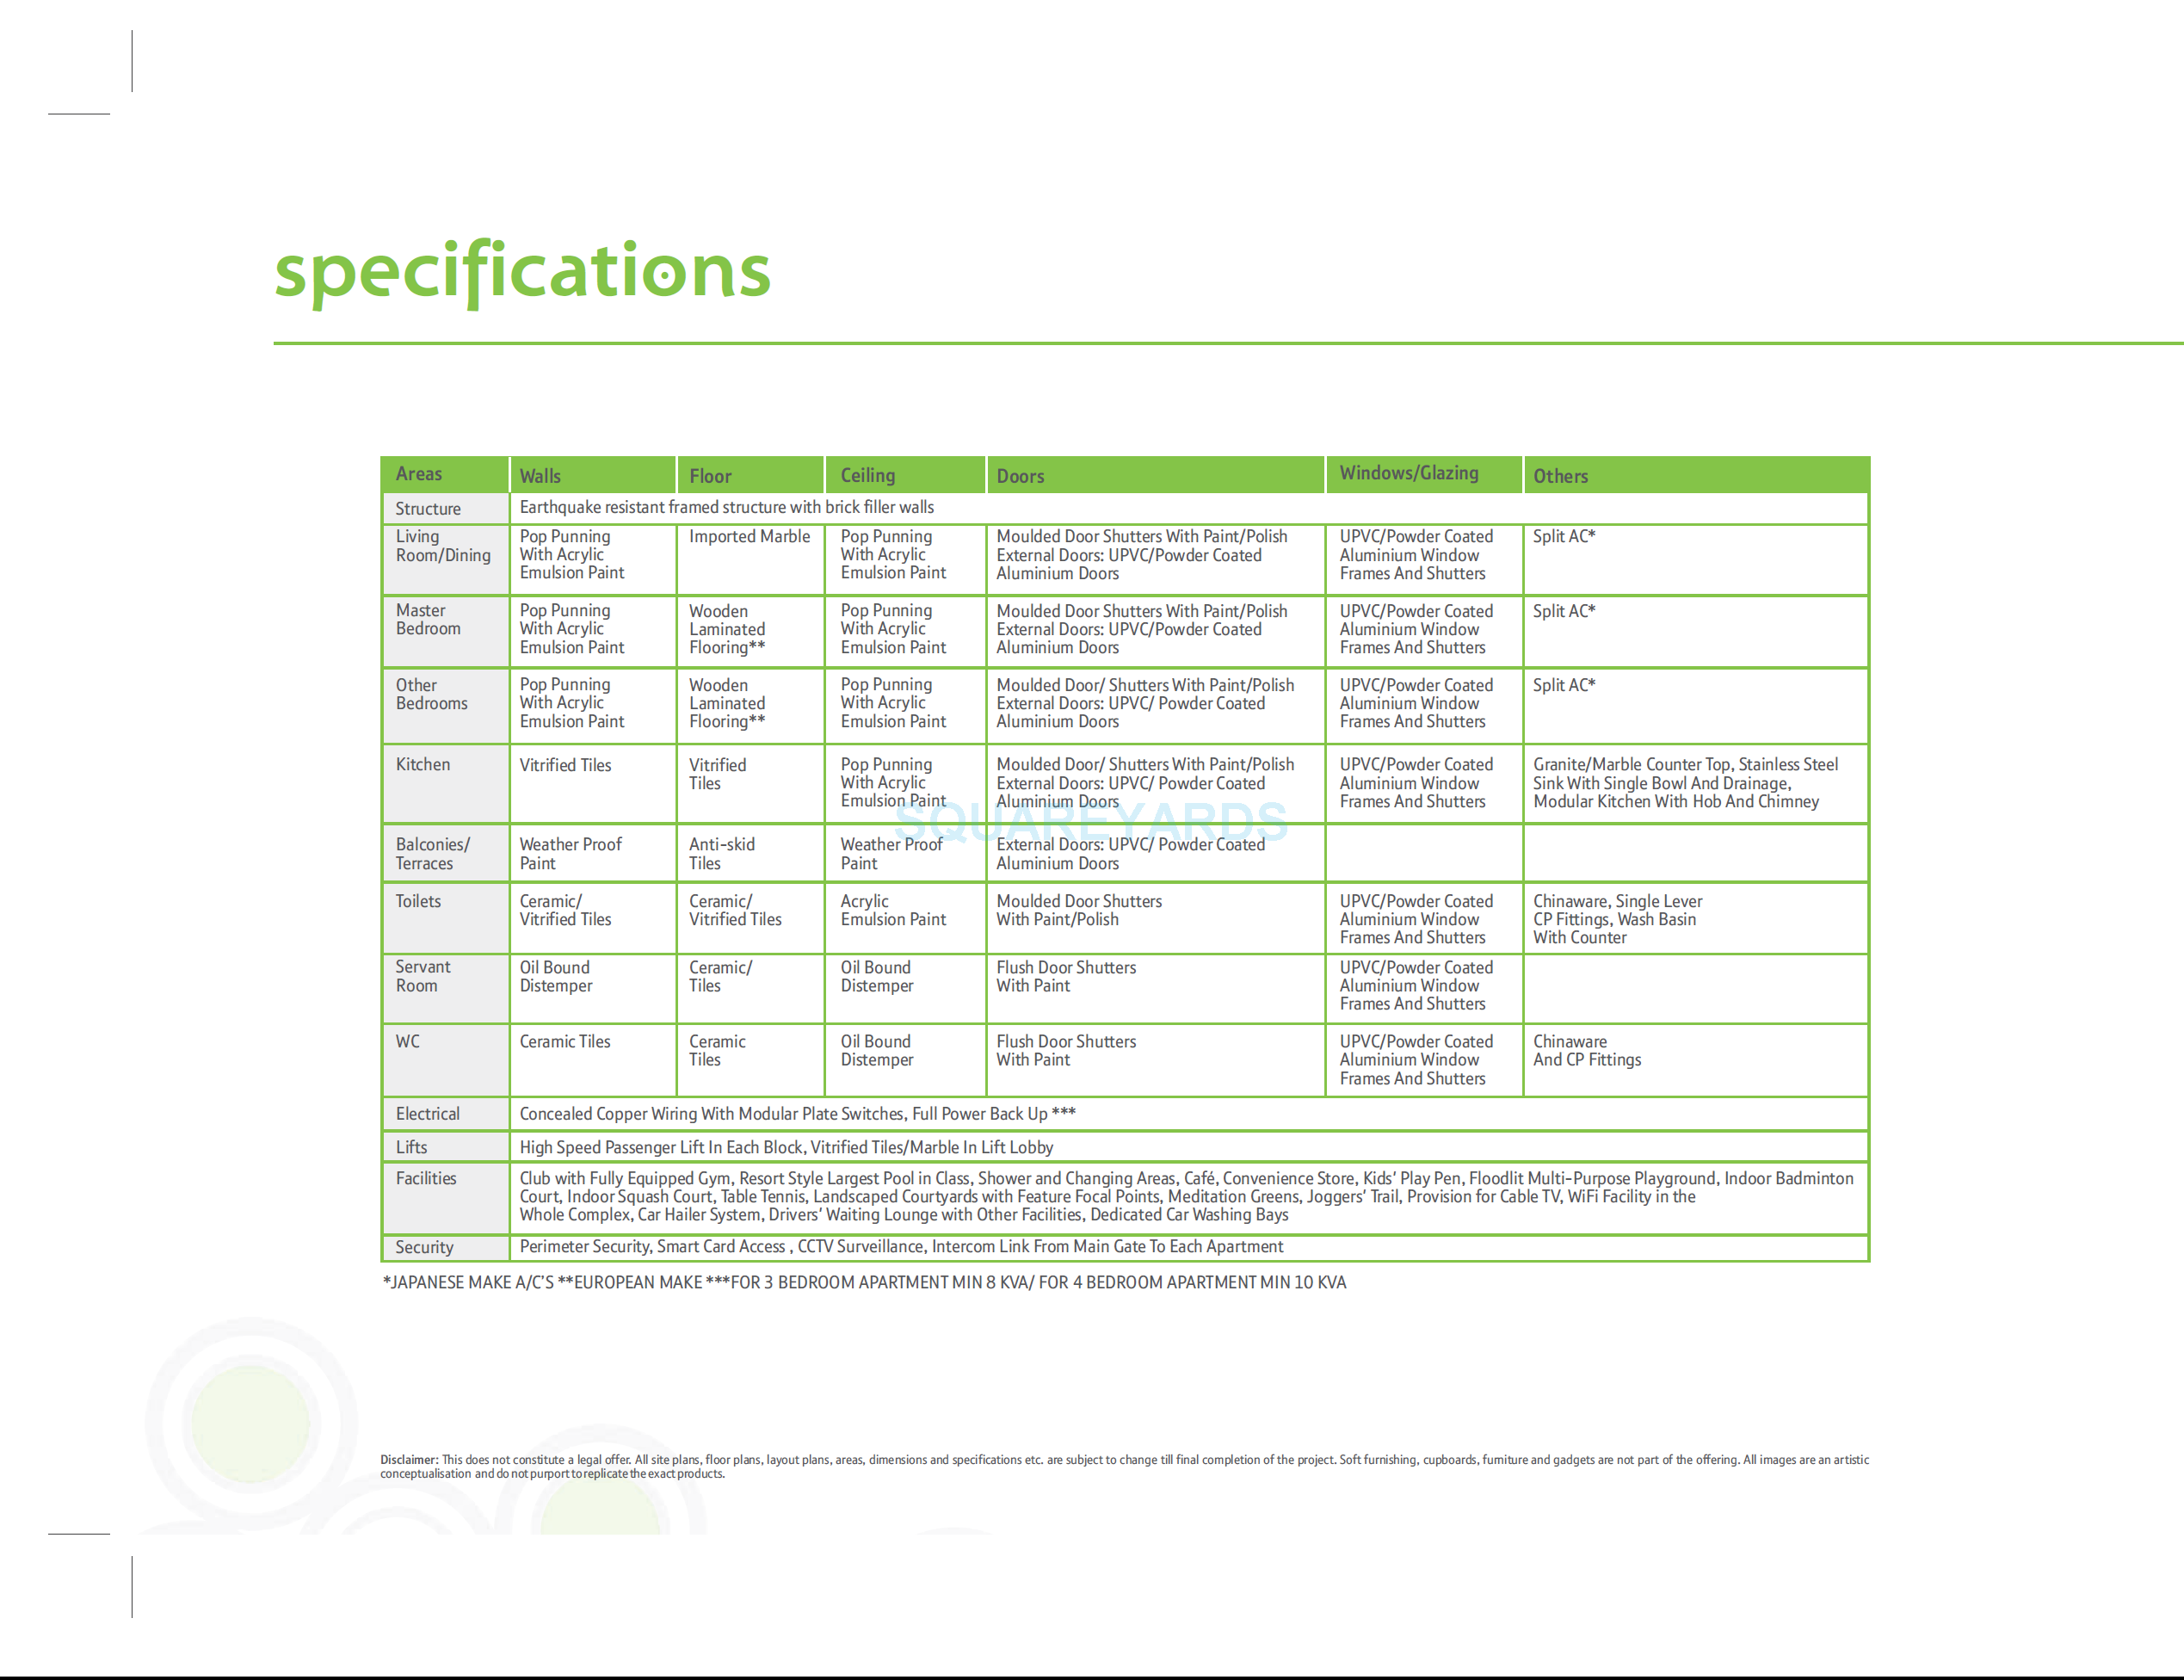 conscient heritage one specification1